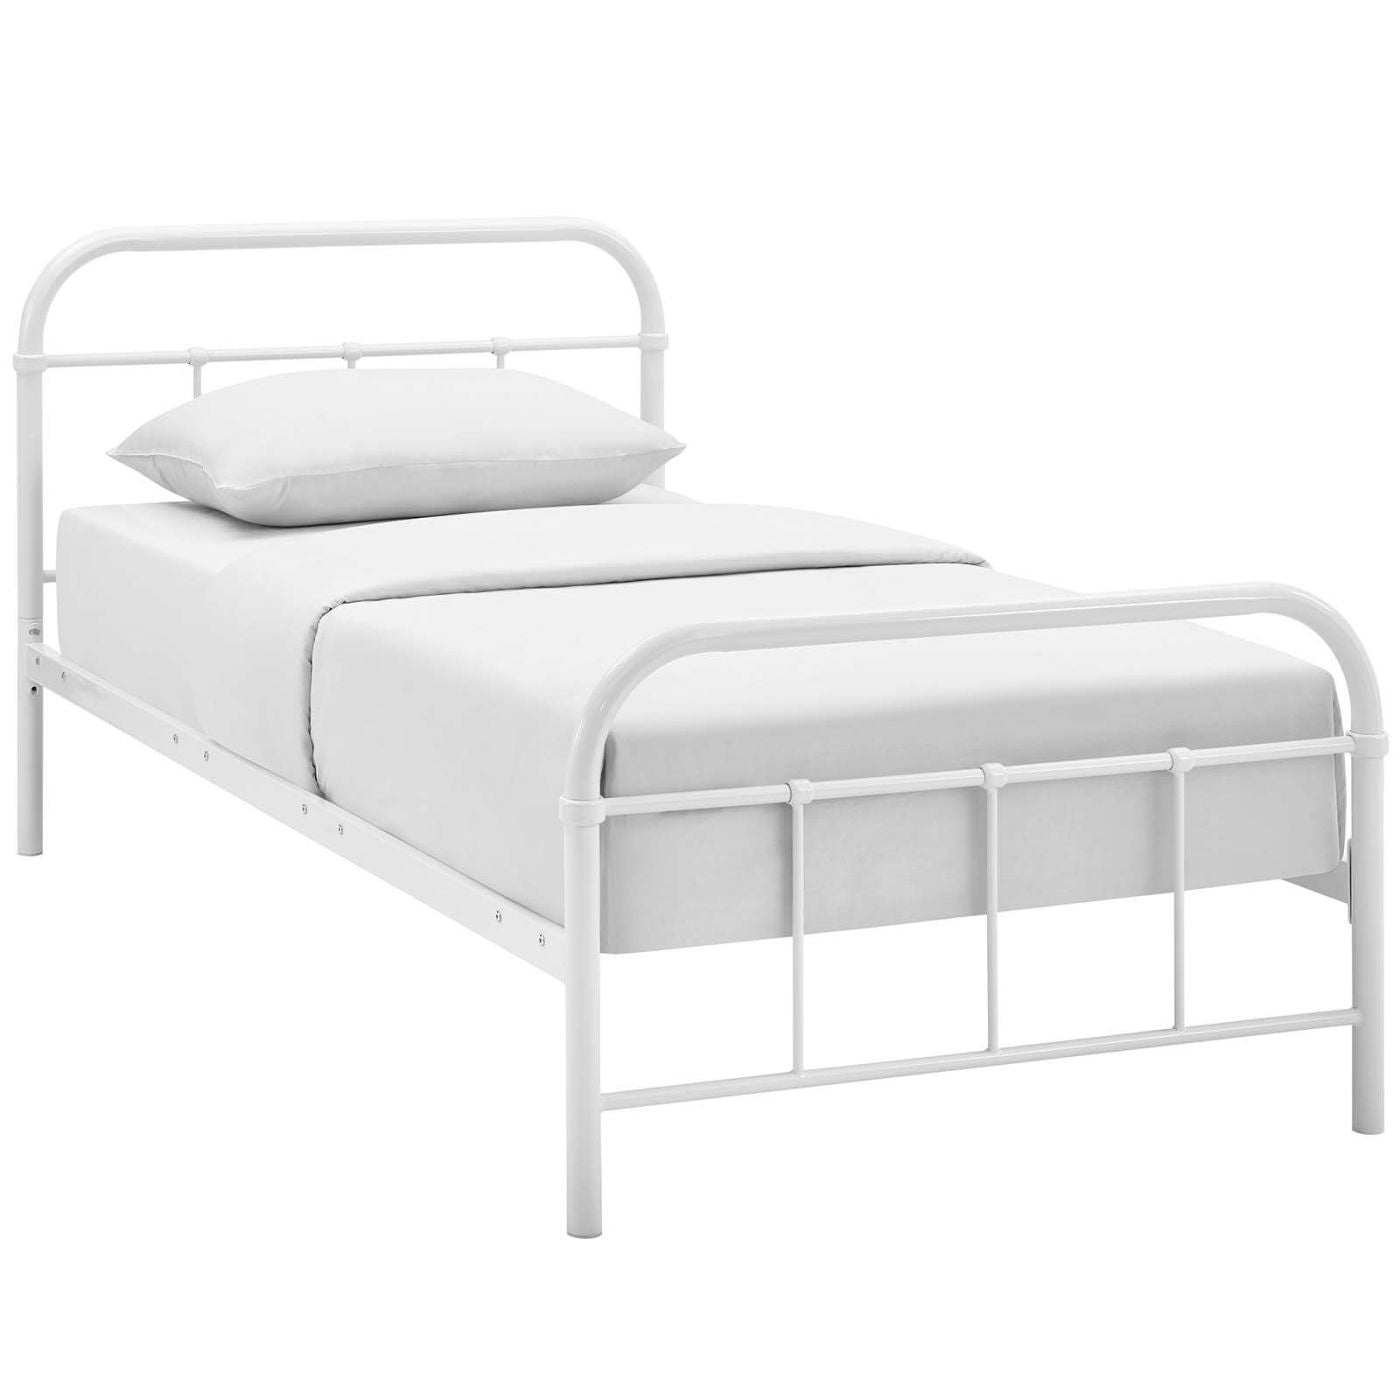 Modway MOD-5531-BRN-SET Maisie Twin Stainless Steel Bed Frame